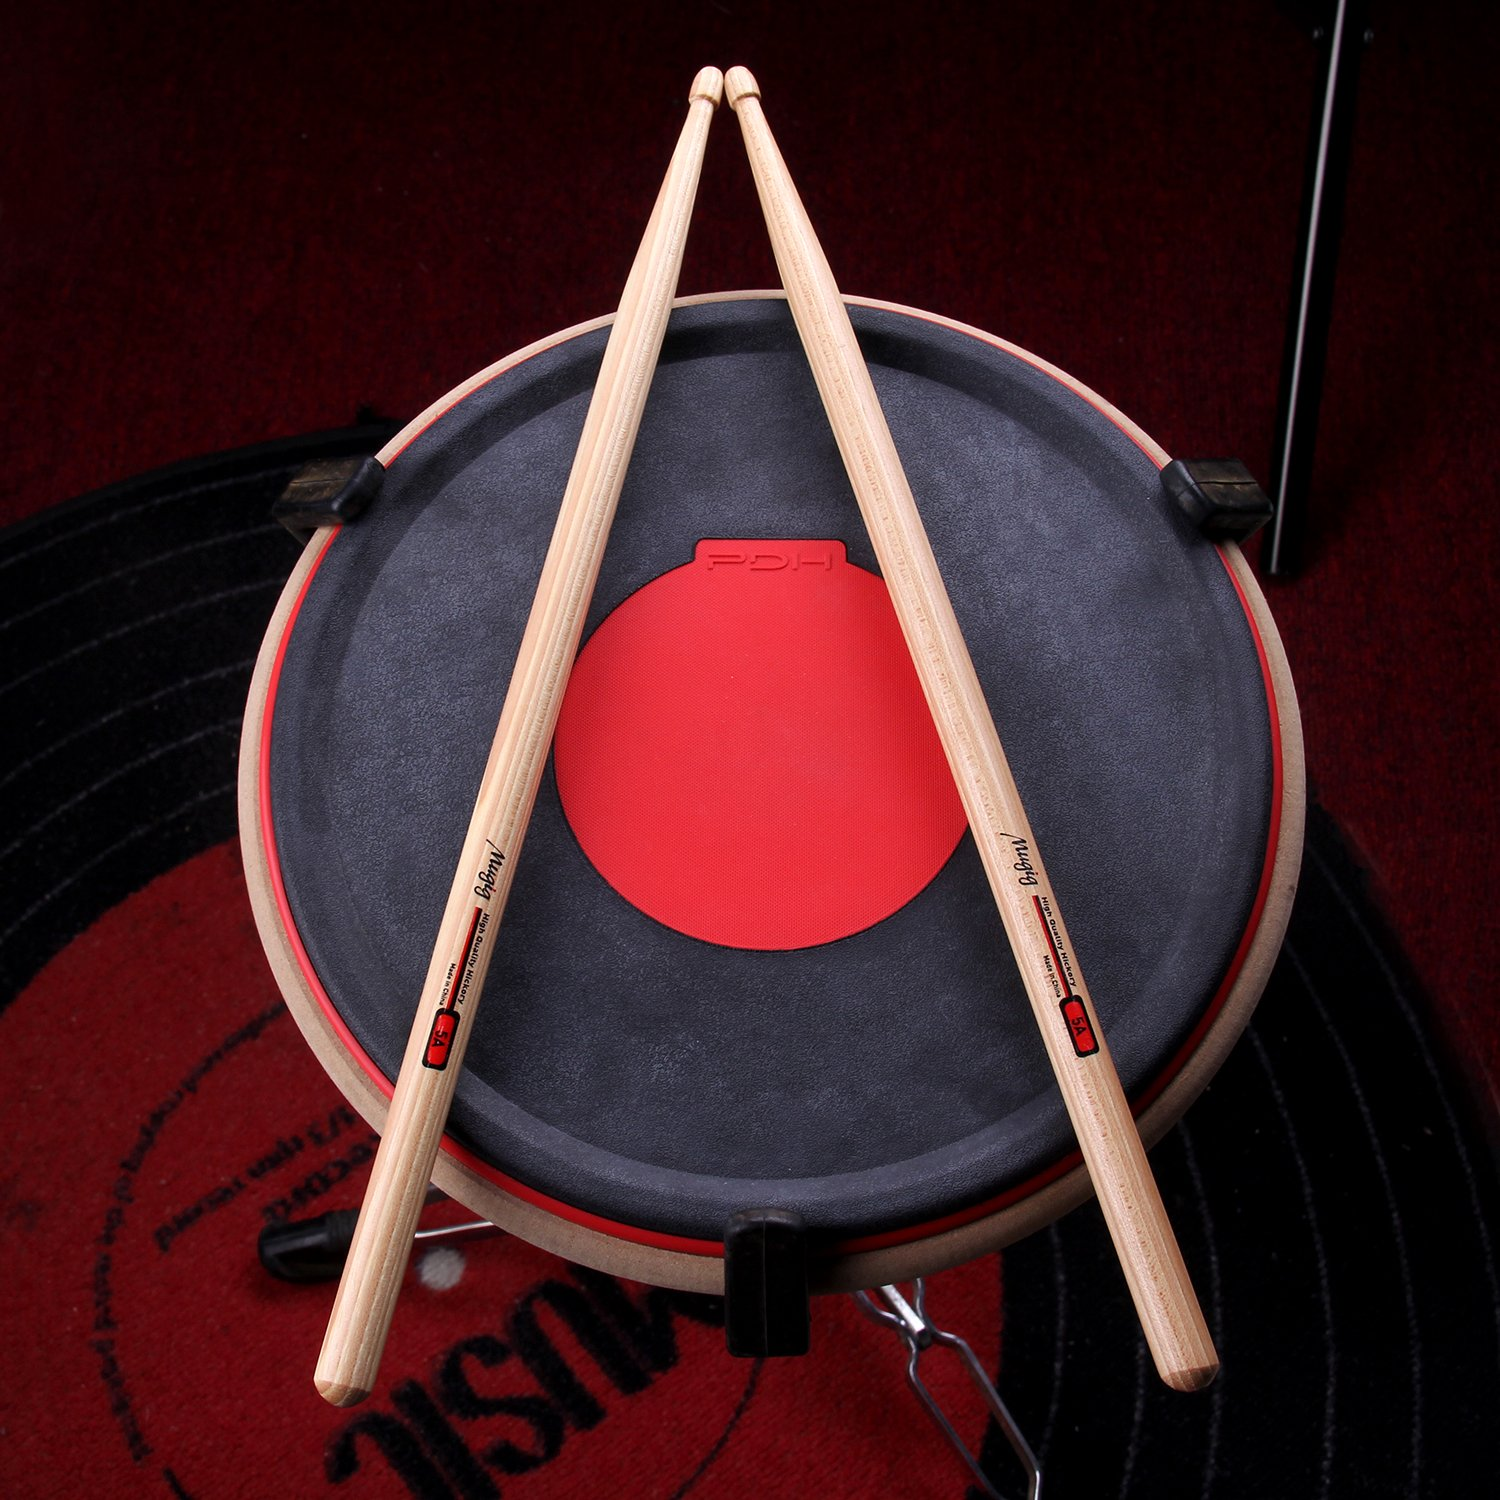 Mugig Drum Pad for Practicing, Unique Design in Red Heart Drum Pad, Combat Practice and Rhythm Guidance